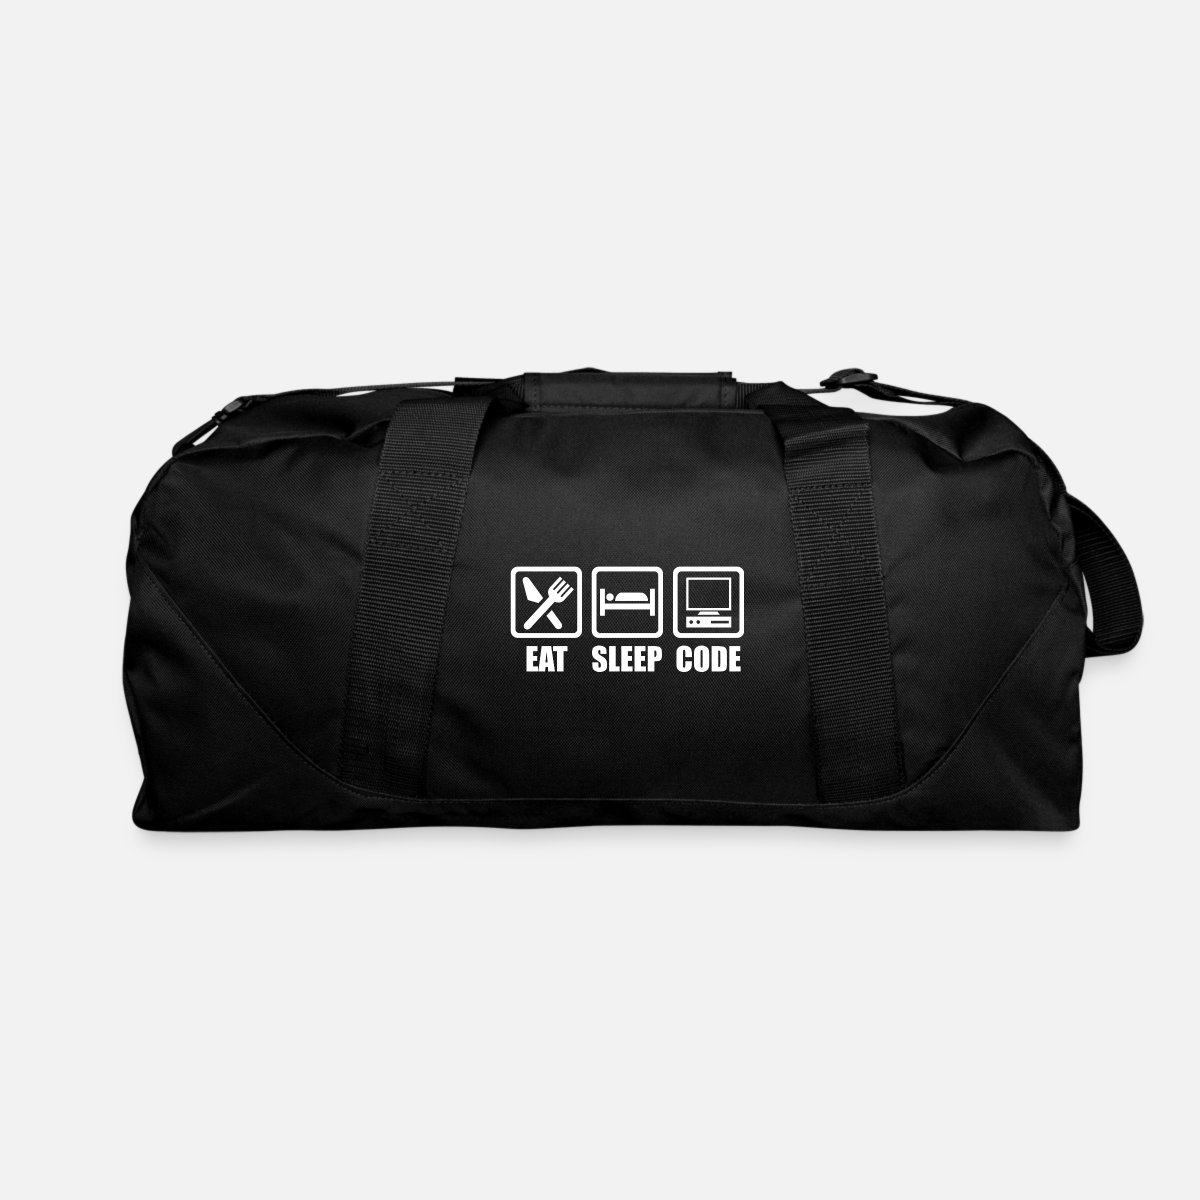 301dc3421dea Eat Sleep Code Duffle Bag